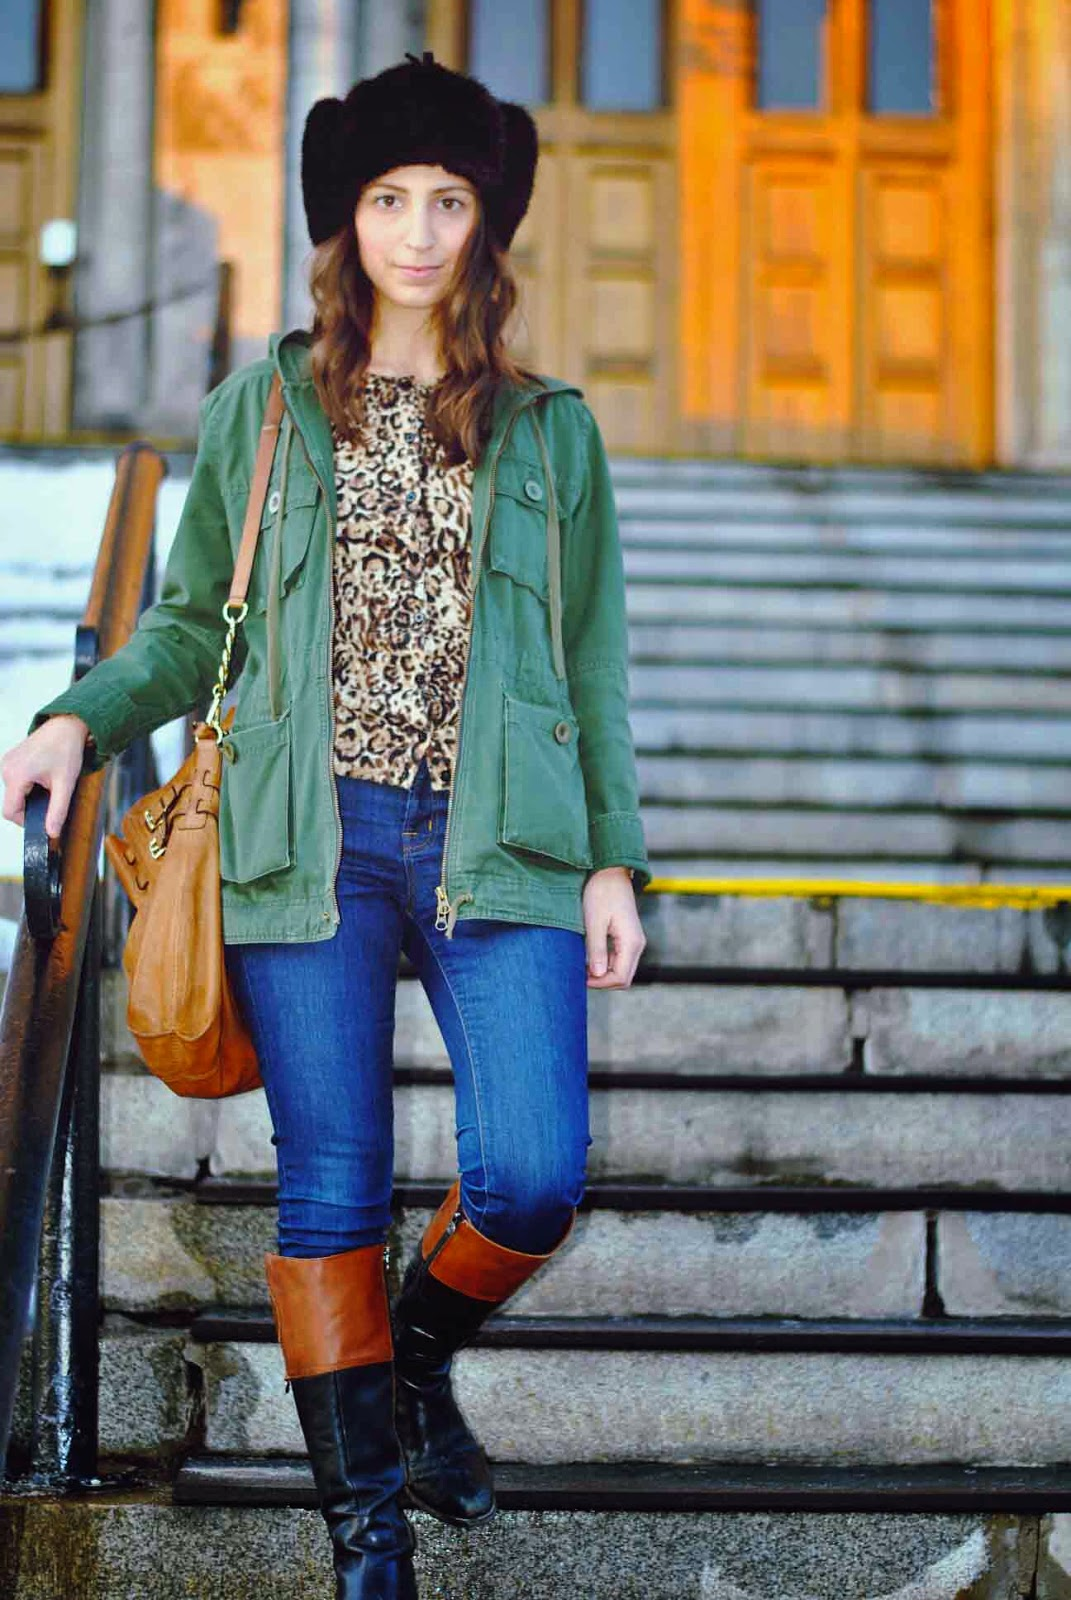 fur hat army green jacket leopard cardigan riding boots